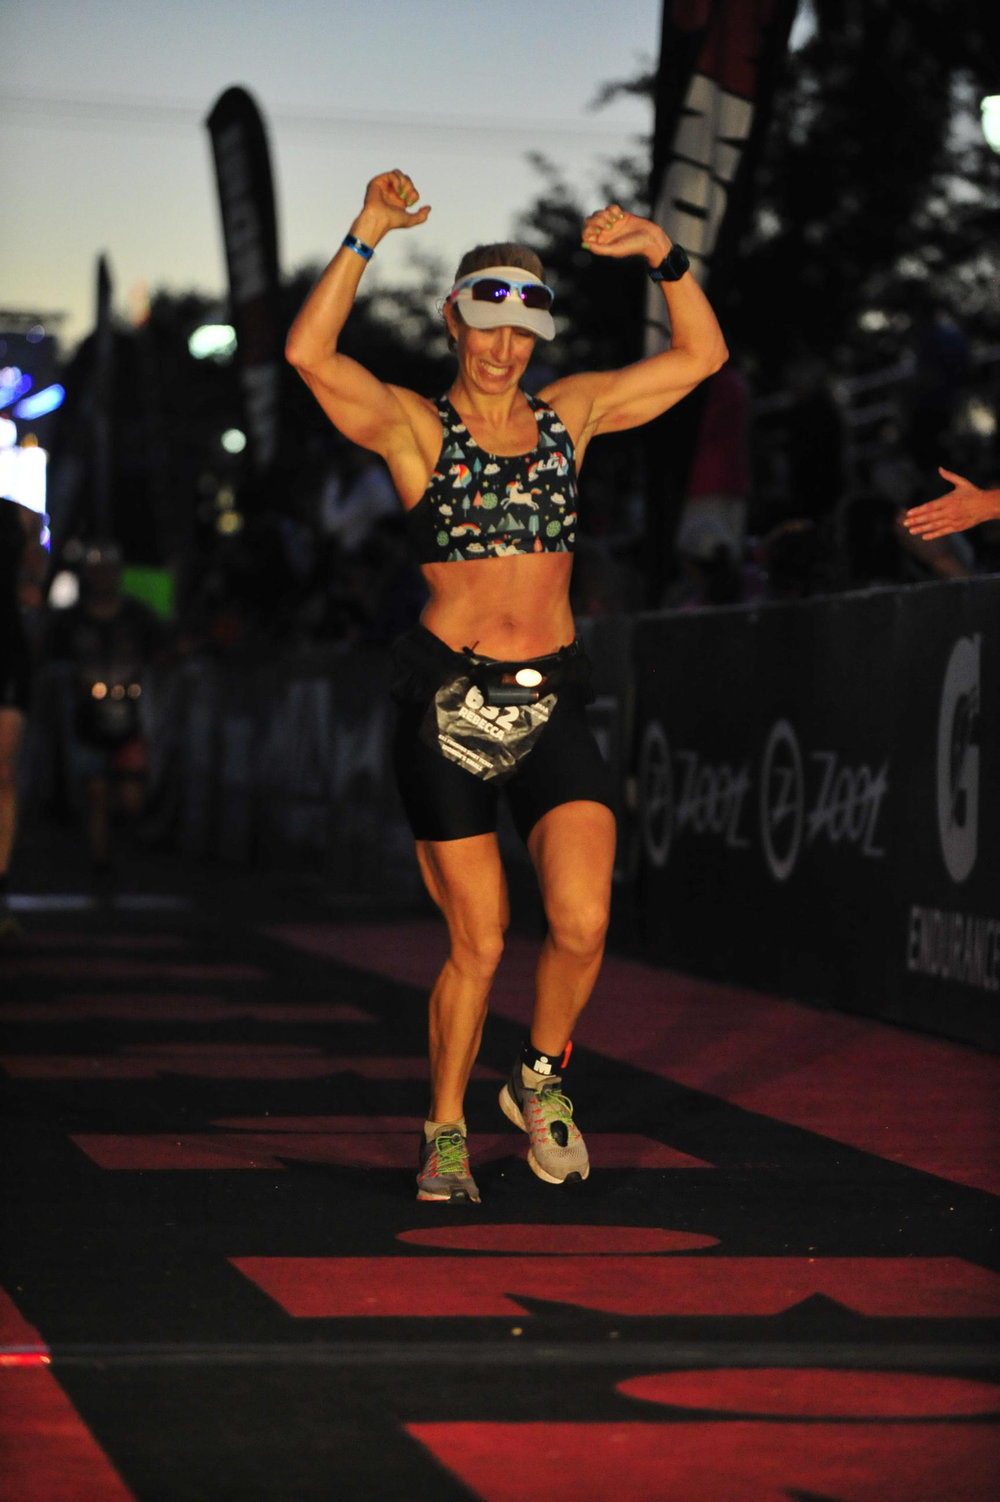 Coach_Terry_Wilson_Pursuit_of_The_Perfect_Race_IRONMAN_Arizona_Rebecca_McKee_1.jpg